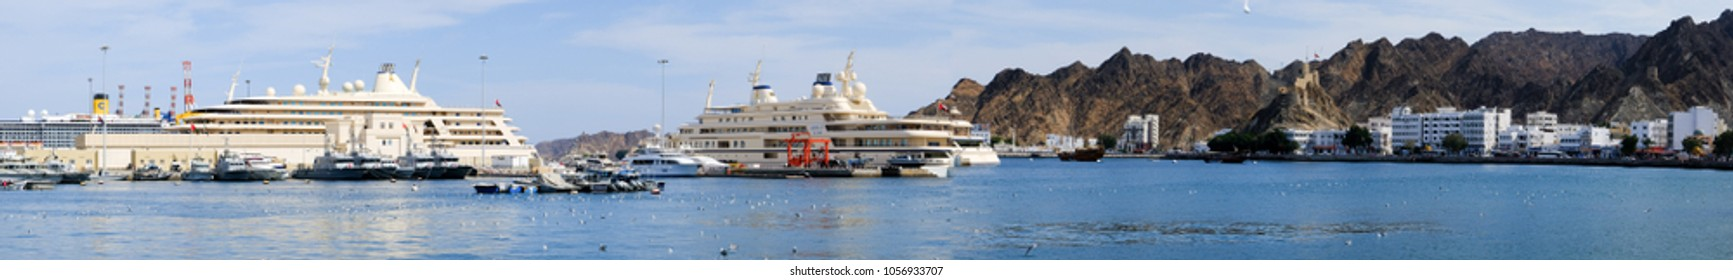 Muscat / Sultanate of Oman - Feb 17 2018: Panoramic view of the harbor of Muscat with the royal yacht Al Said in background.